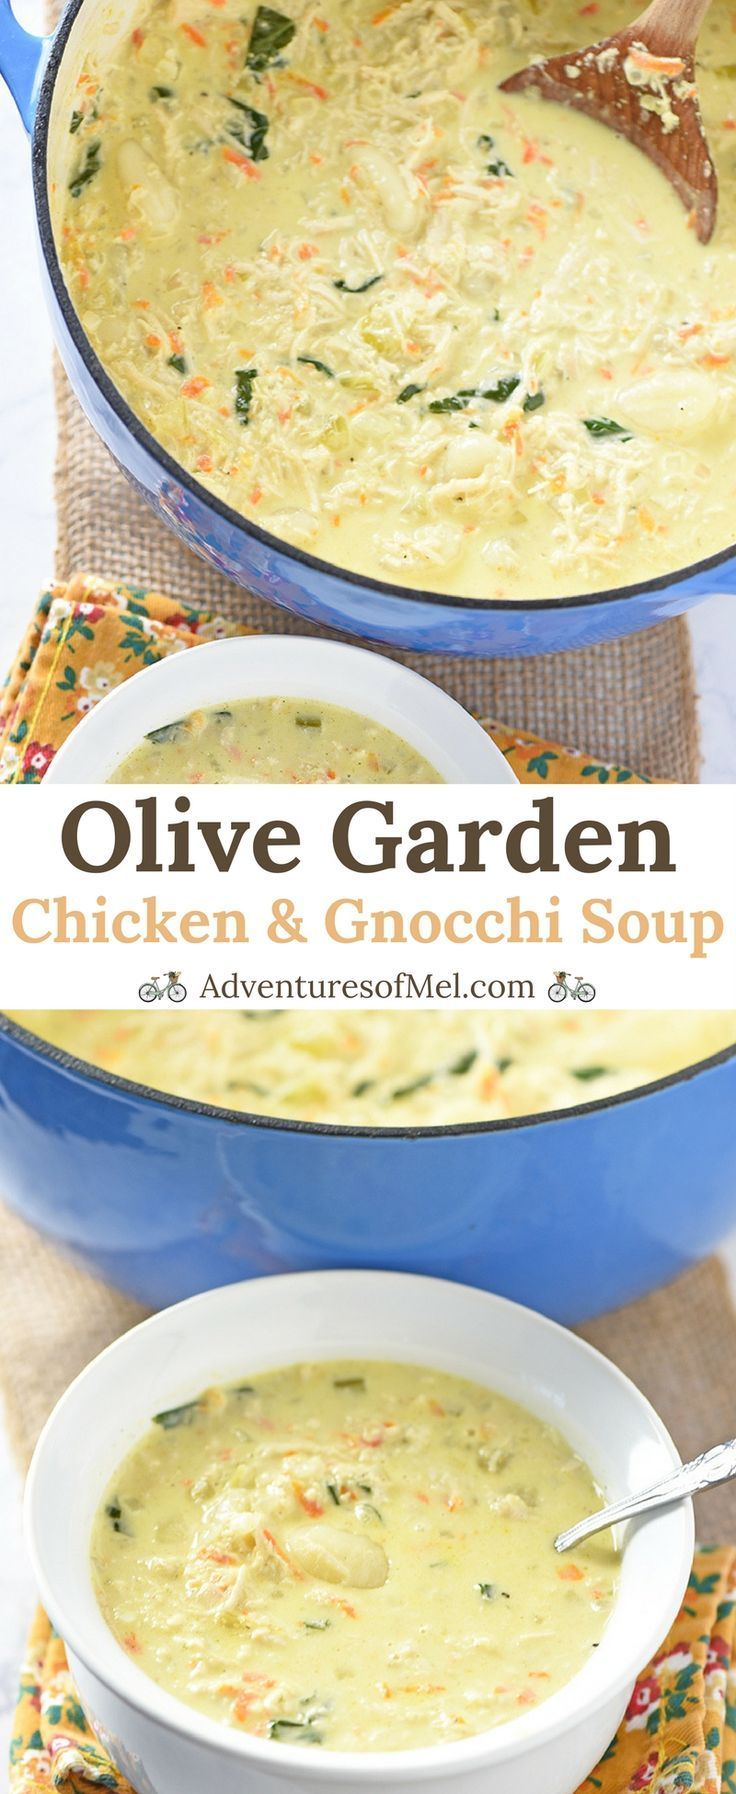 Olive Garden Chicken and Gnocchi Soup with chicken, spinach, and gnocchi. Easy copycat of the creamy restaurant soup, it makes a delicious lunch or dinner! #soups #chicken #copycat